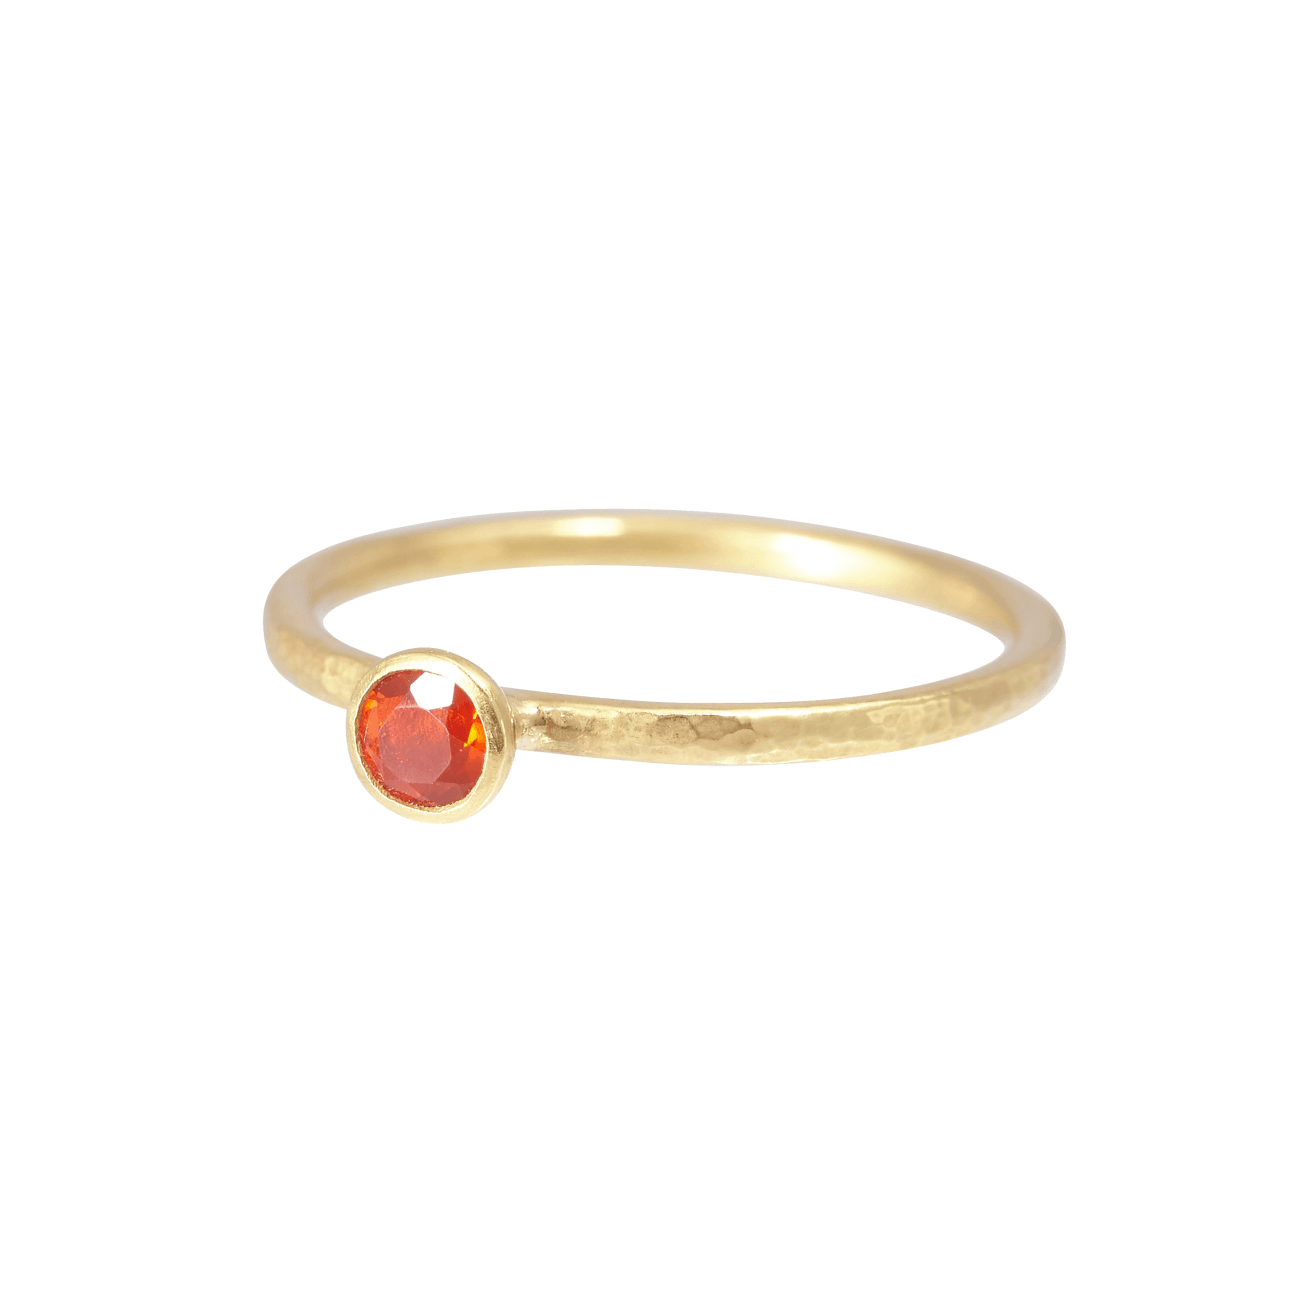 Gurhan Jewelry - Stacking ring with round Mexican opal | Manfredi Jewels